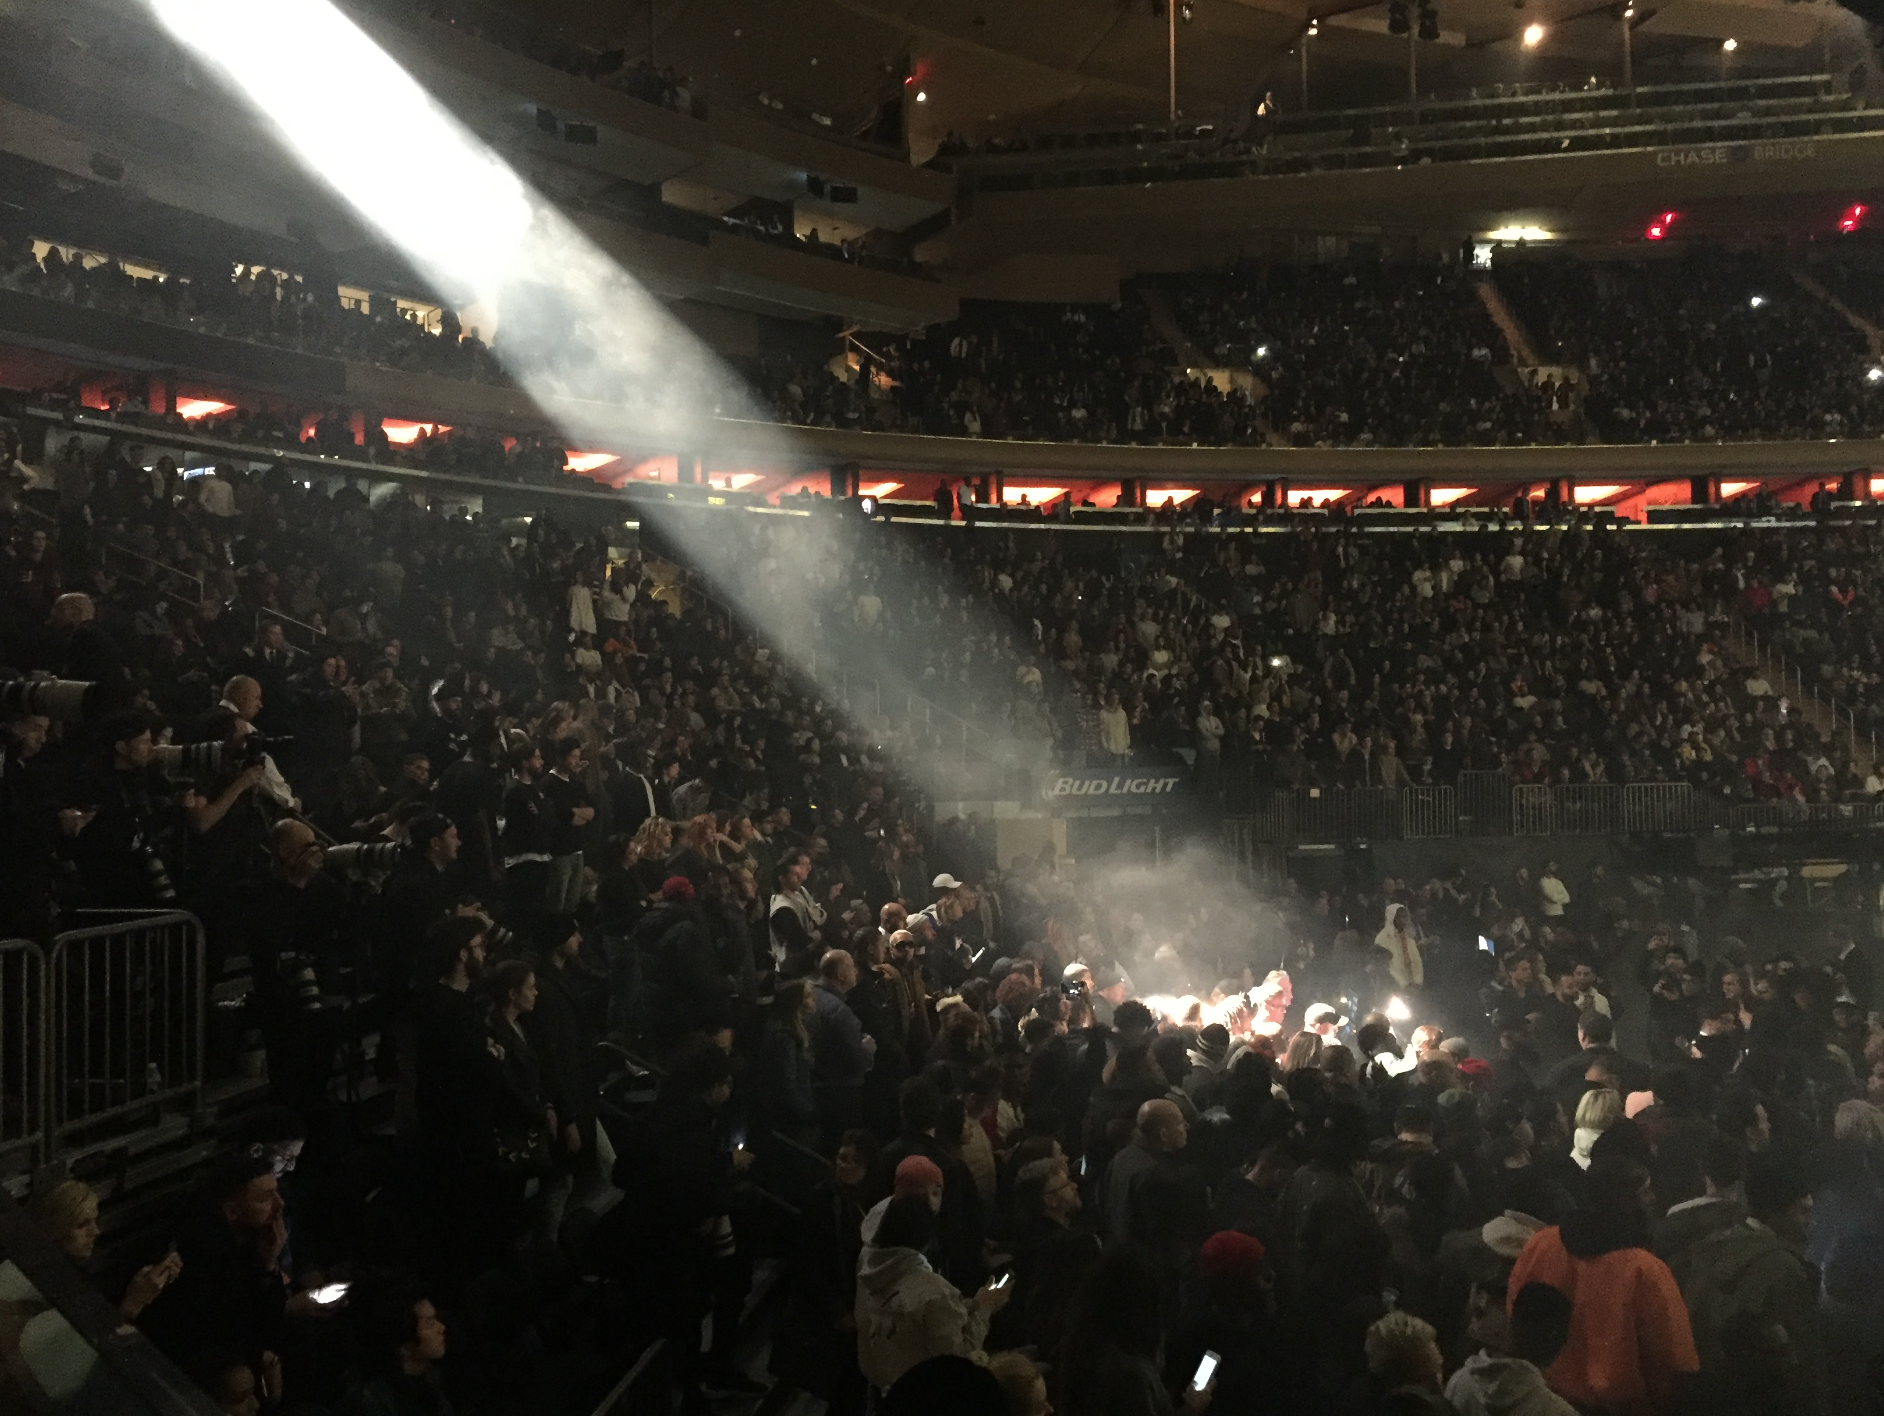 Witnessing The Bizarre Spectacle Of Kanye Westu0027s Yeezy Season 3 Event At Madison  Square Garden